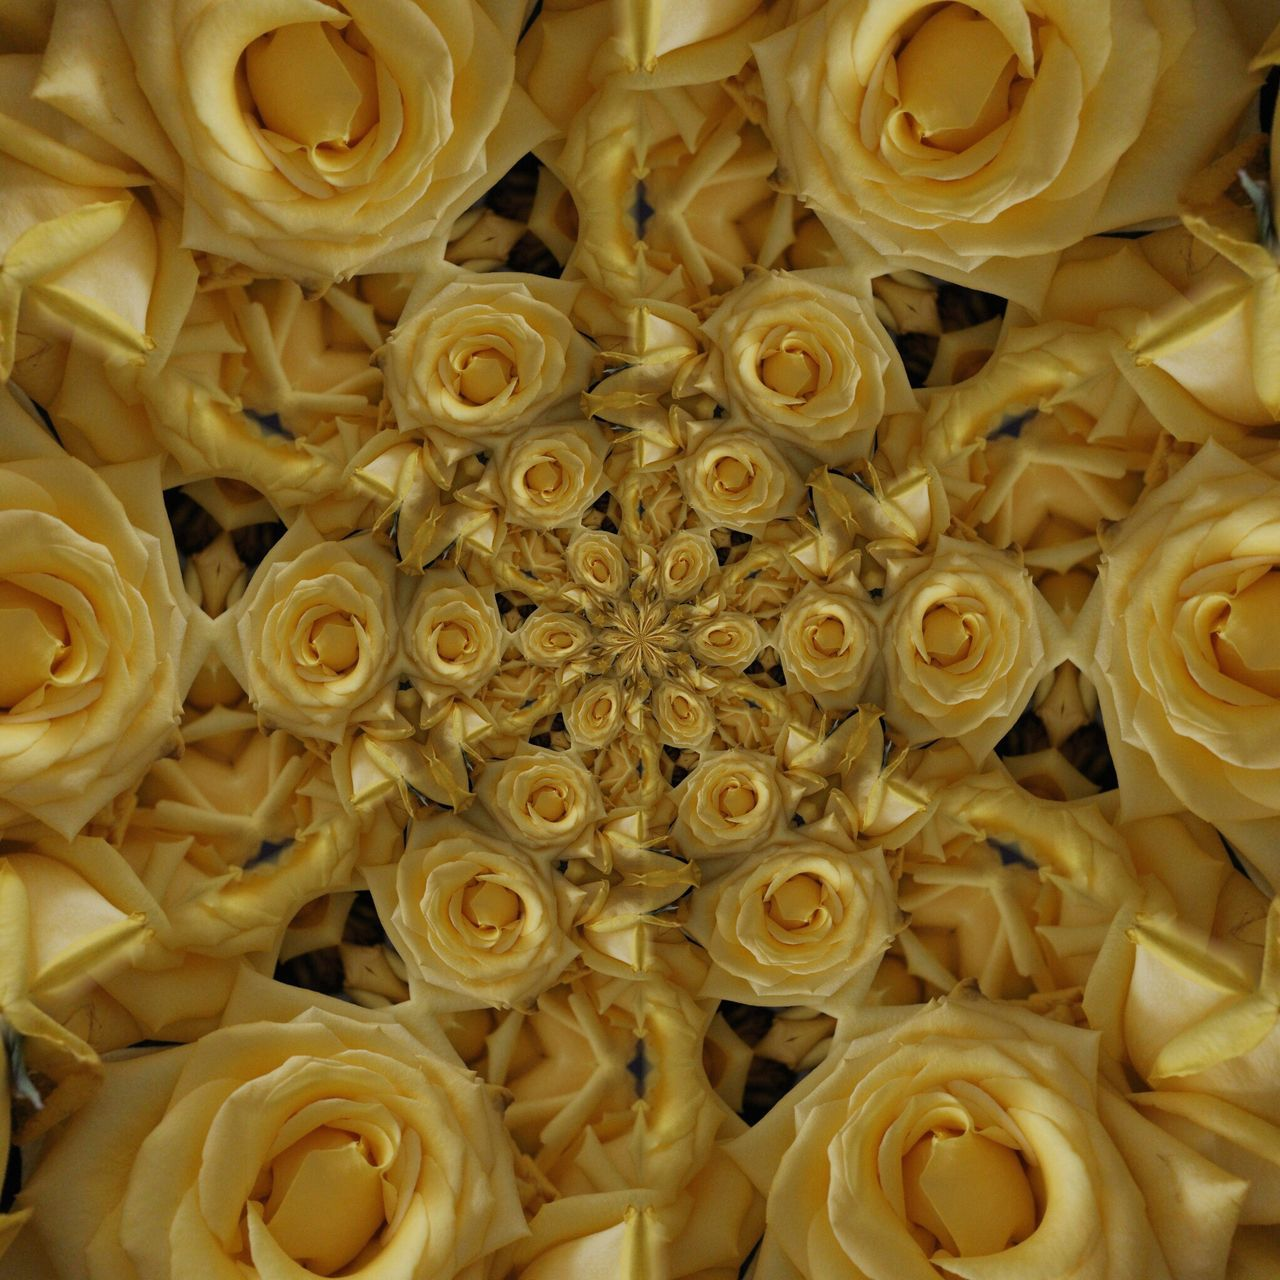 Showcase March rose 3drender Flowers Kaleidoscope Photoedit